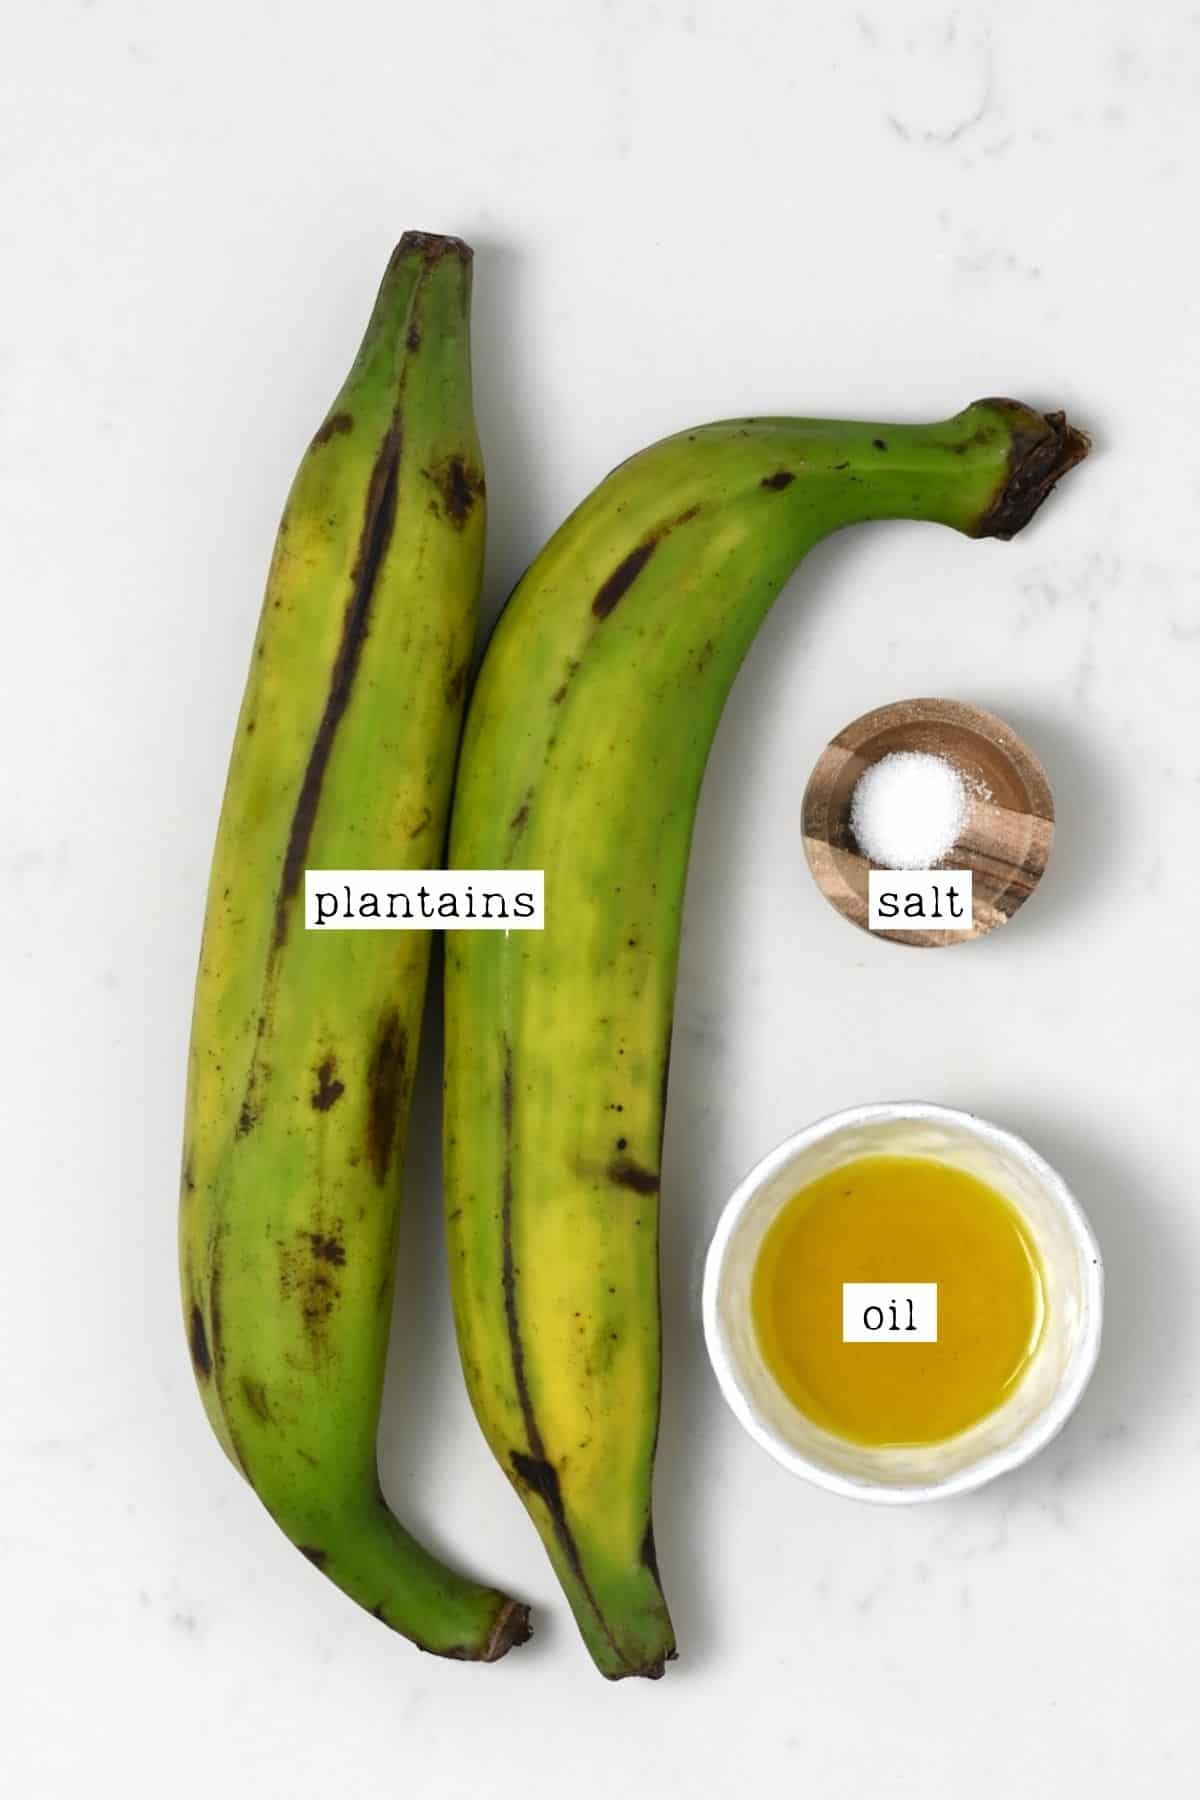 Ingredients for plantain chips